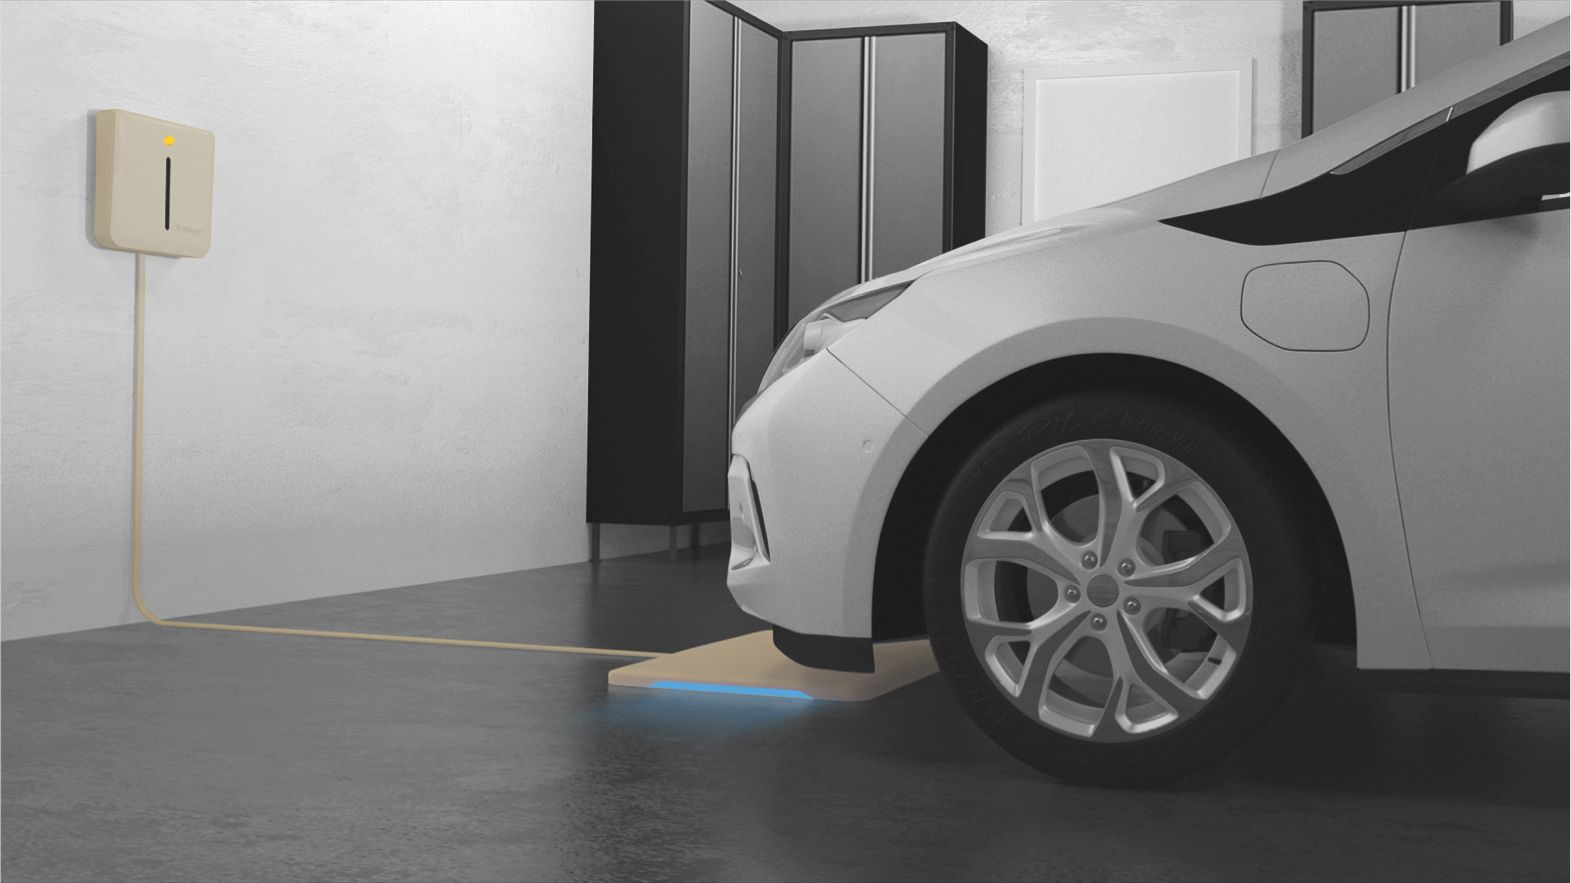 WiTricity's first deployments will be charging systems for home garages and driveways.